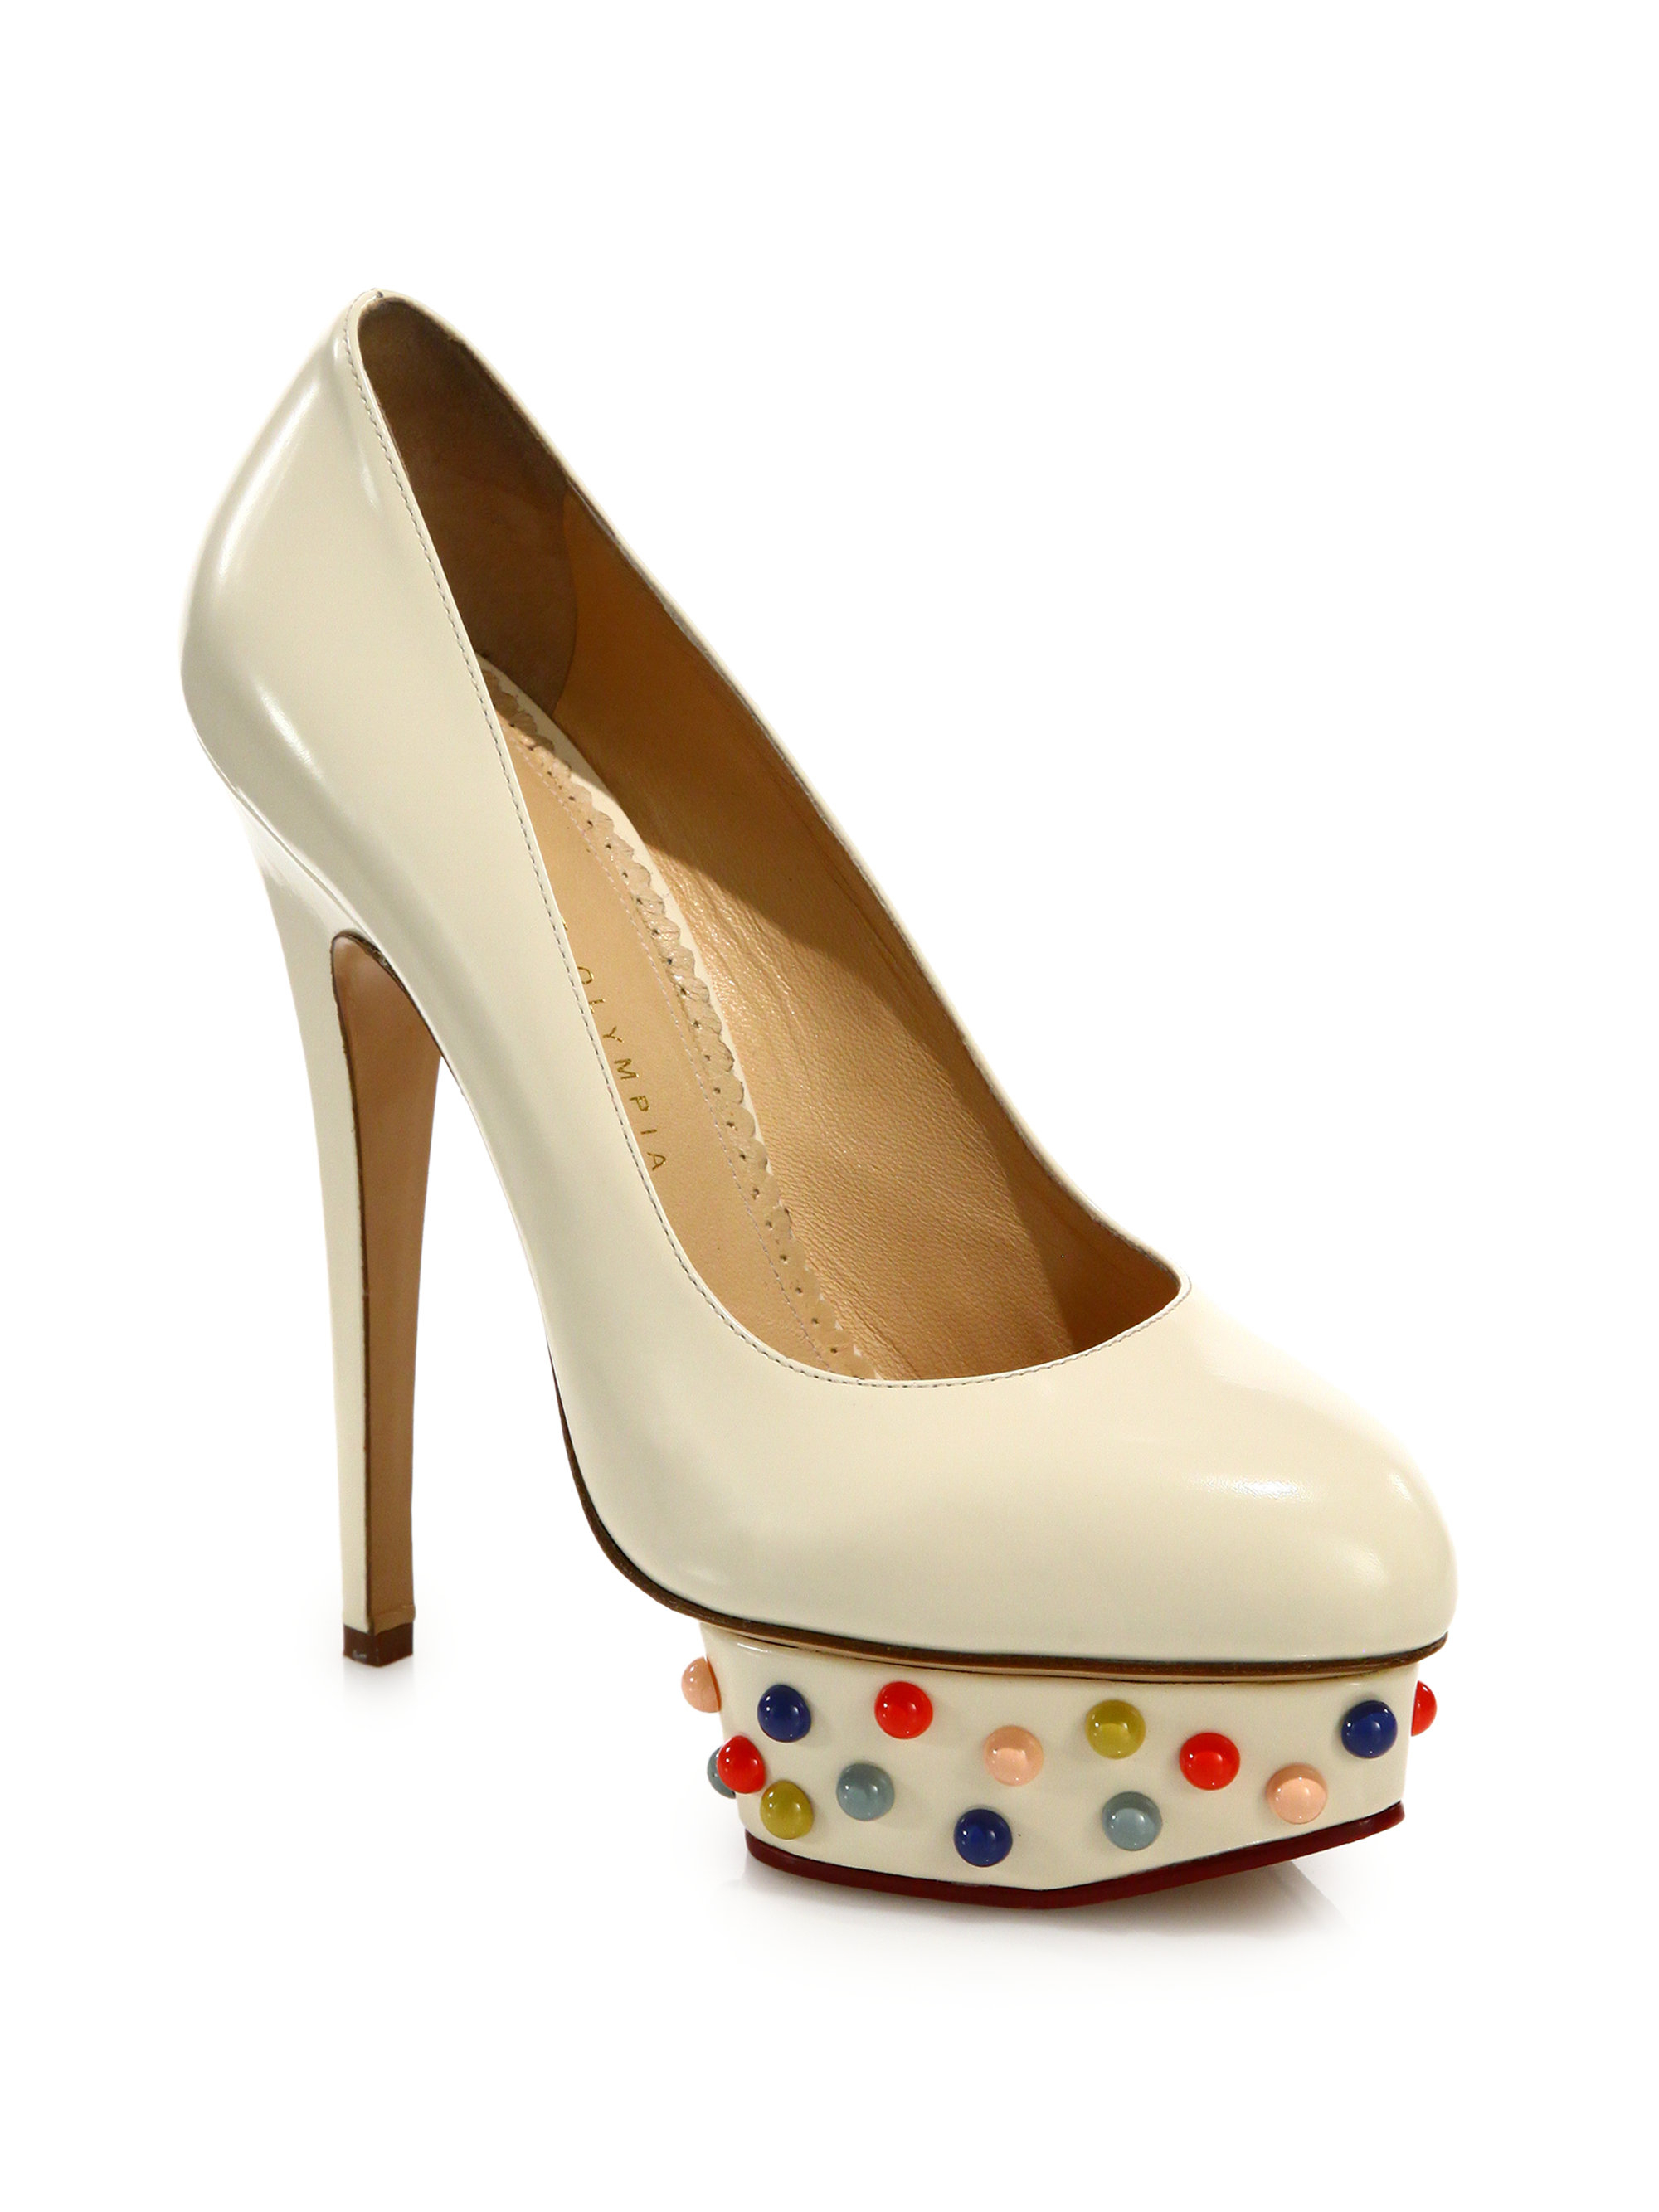 cf2dcb5c3d1 charlotte-olympia-off-white-dolly-studded-platform-leather-pumps-white-product-0-818168383-normal.jpeg